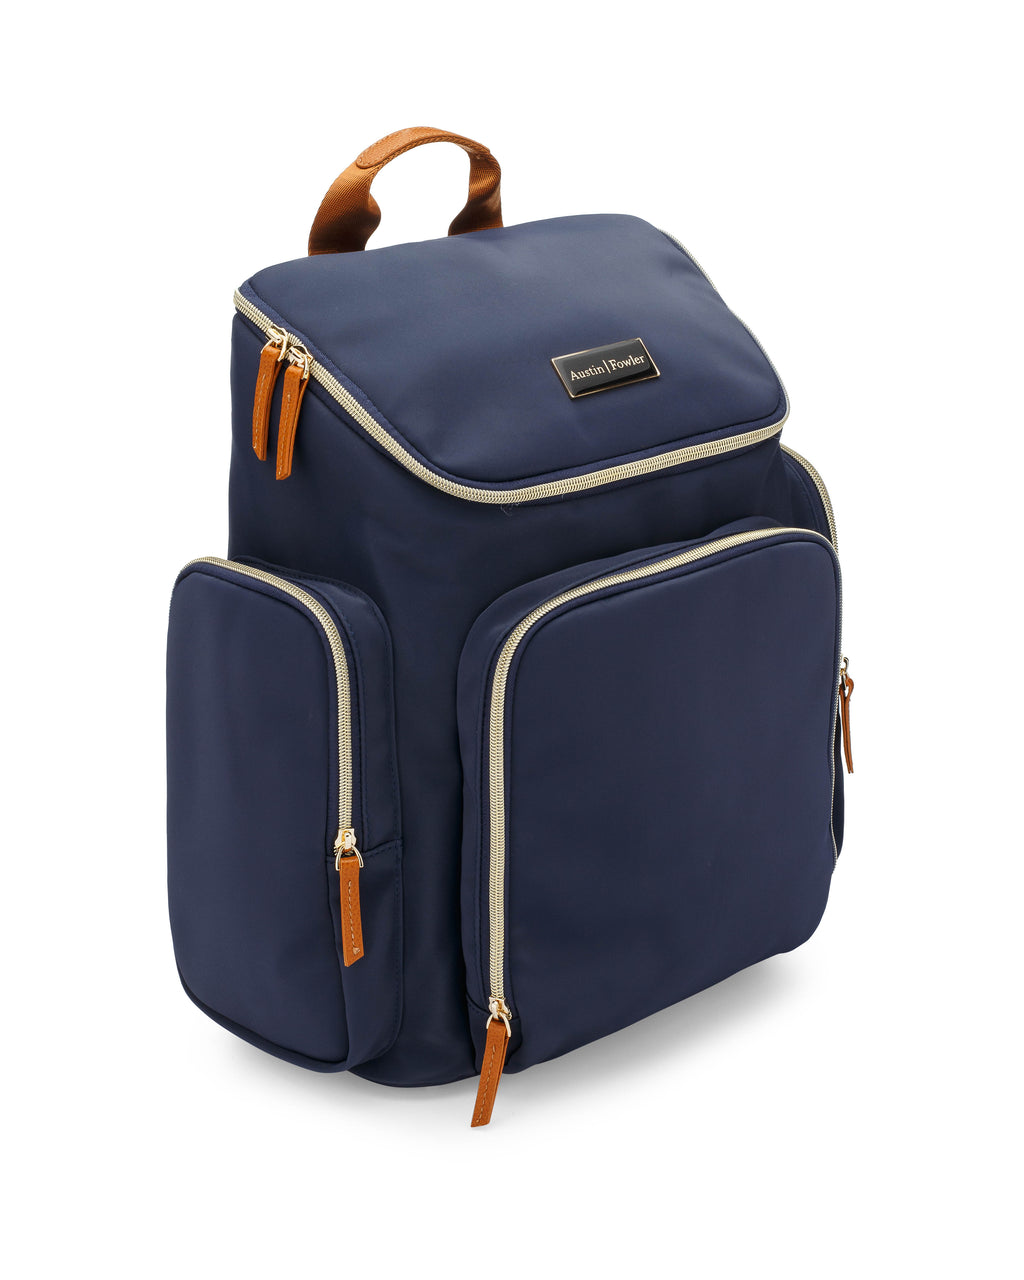 francesca backpack in navy blue (outlet)